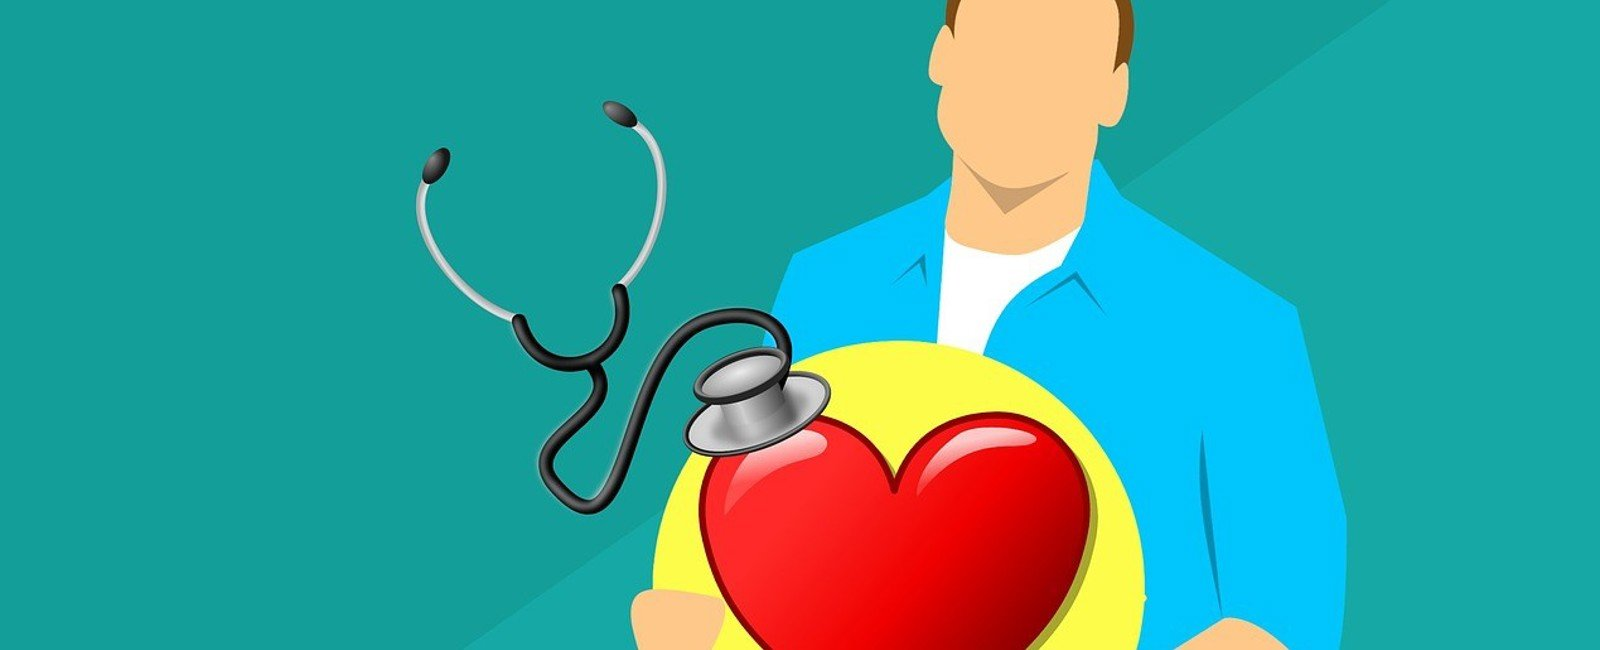 Treatments and Procedures for Heart Disease